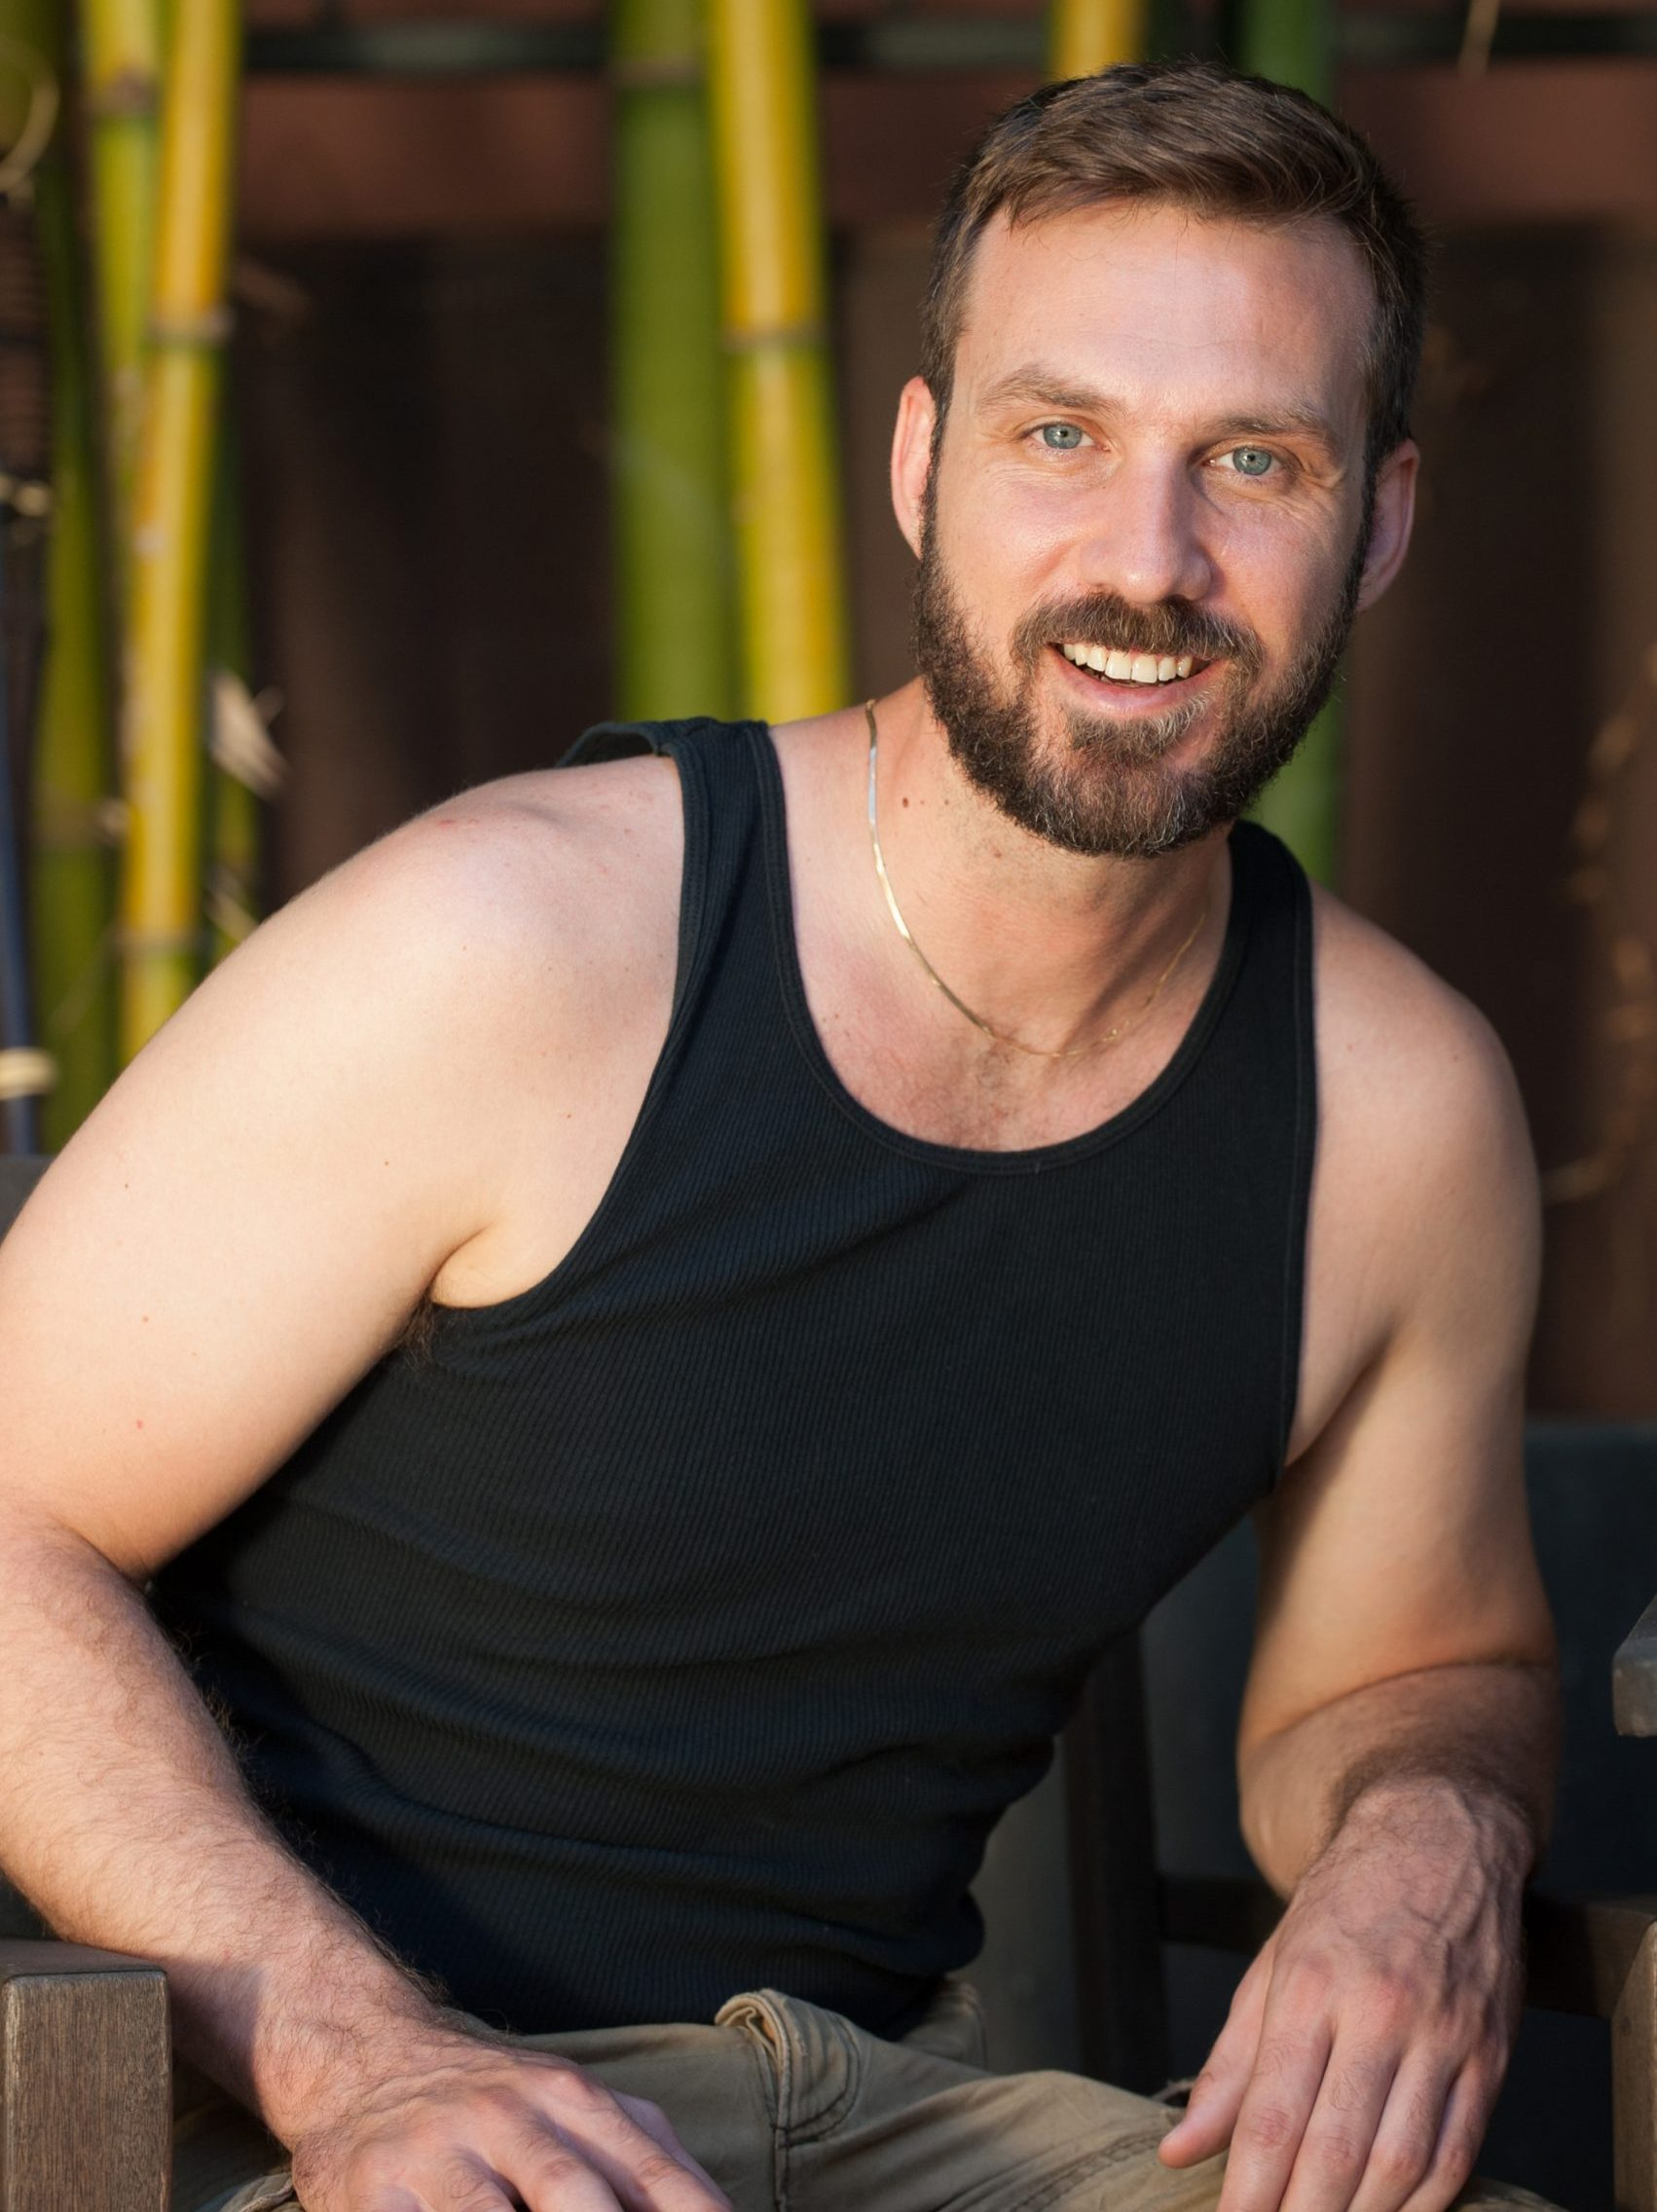 Professional Portrait of Massage Therapist by Hollywood Photo Studio